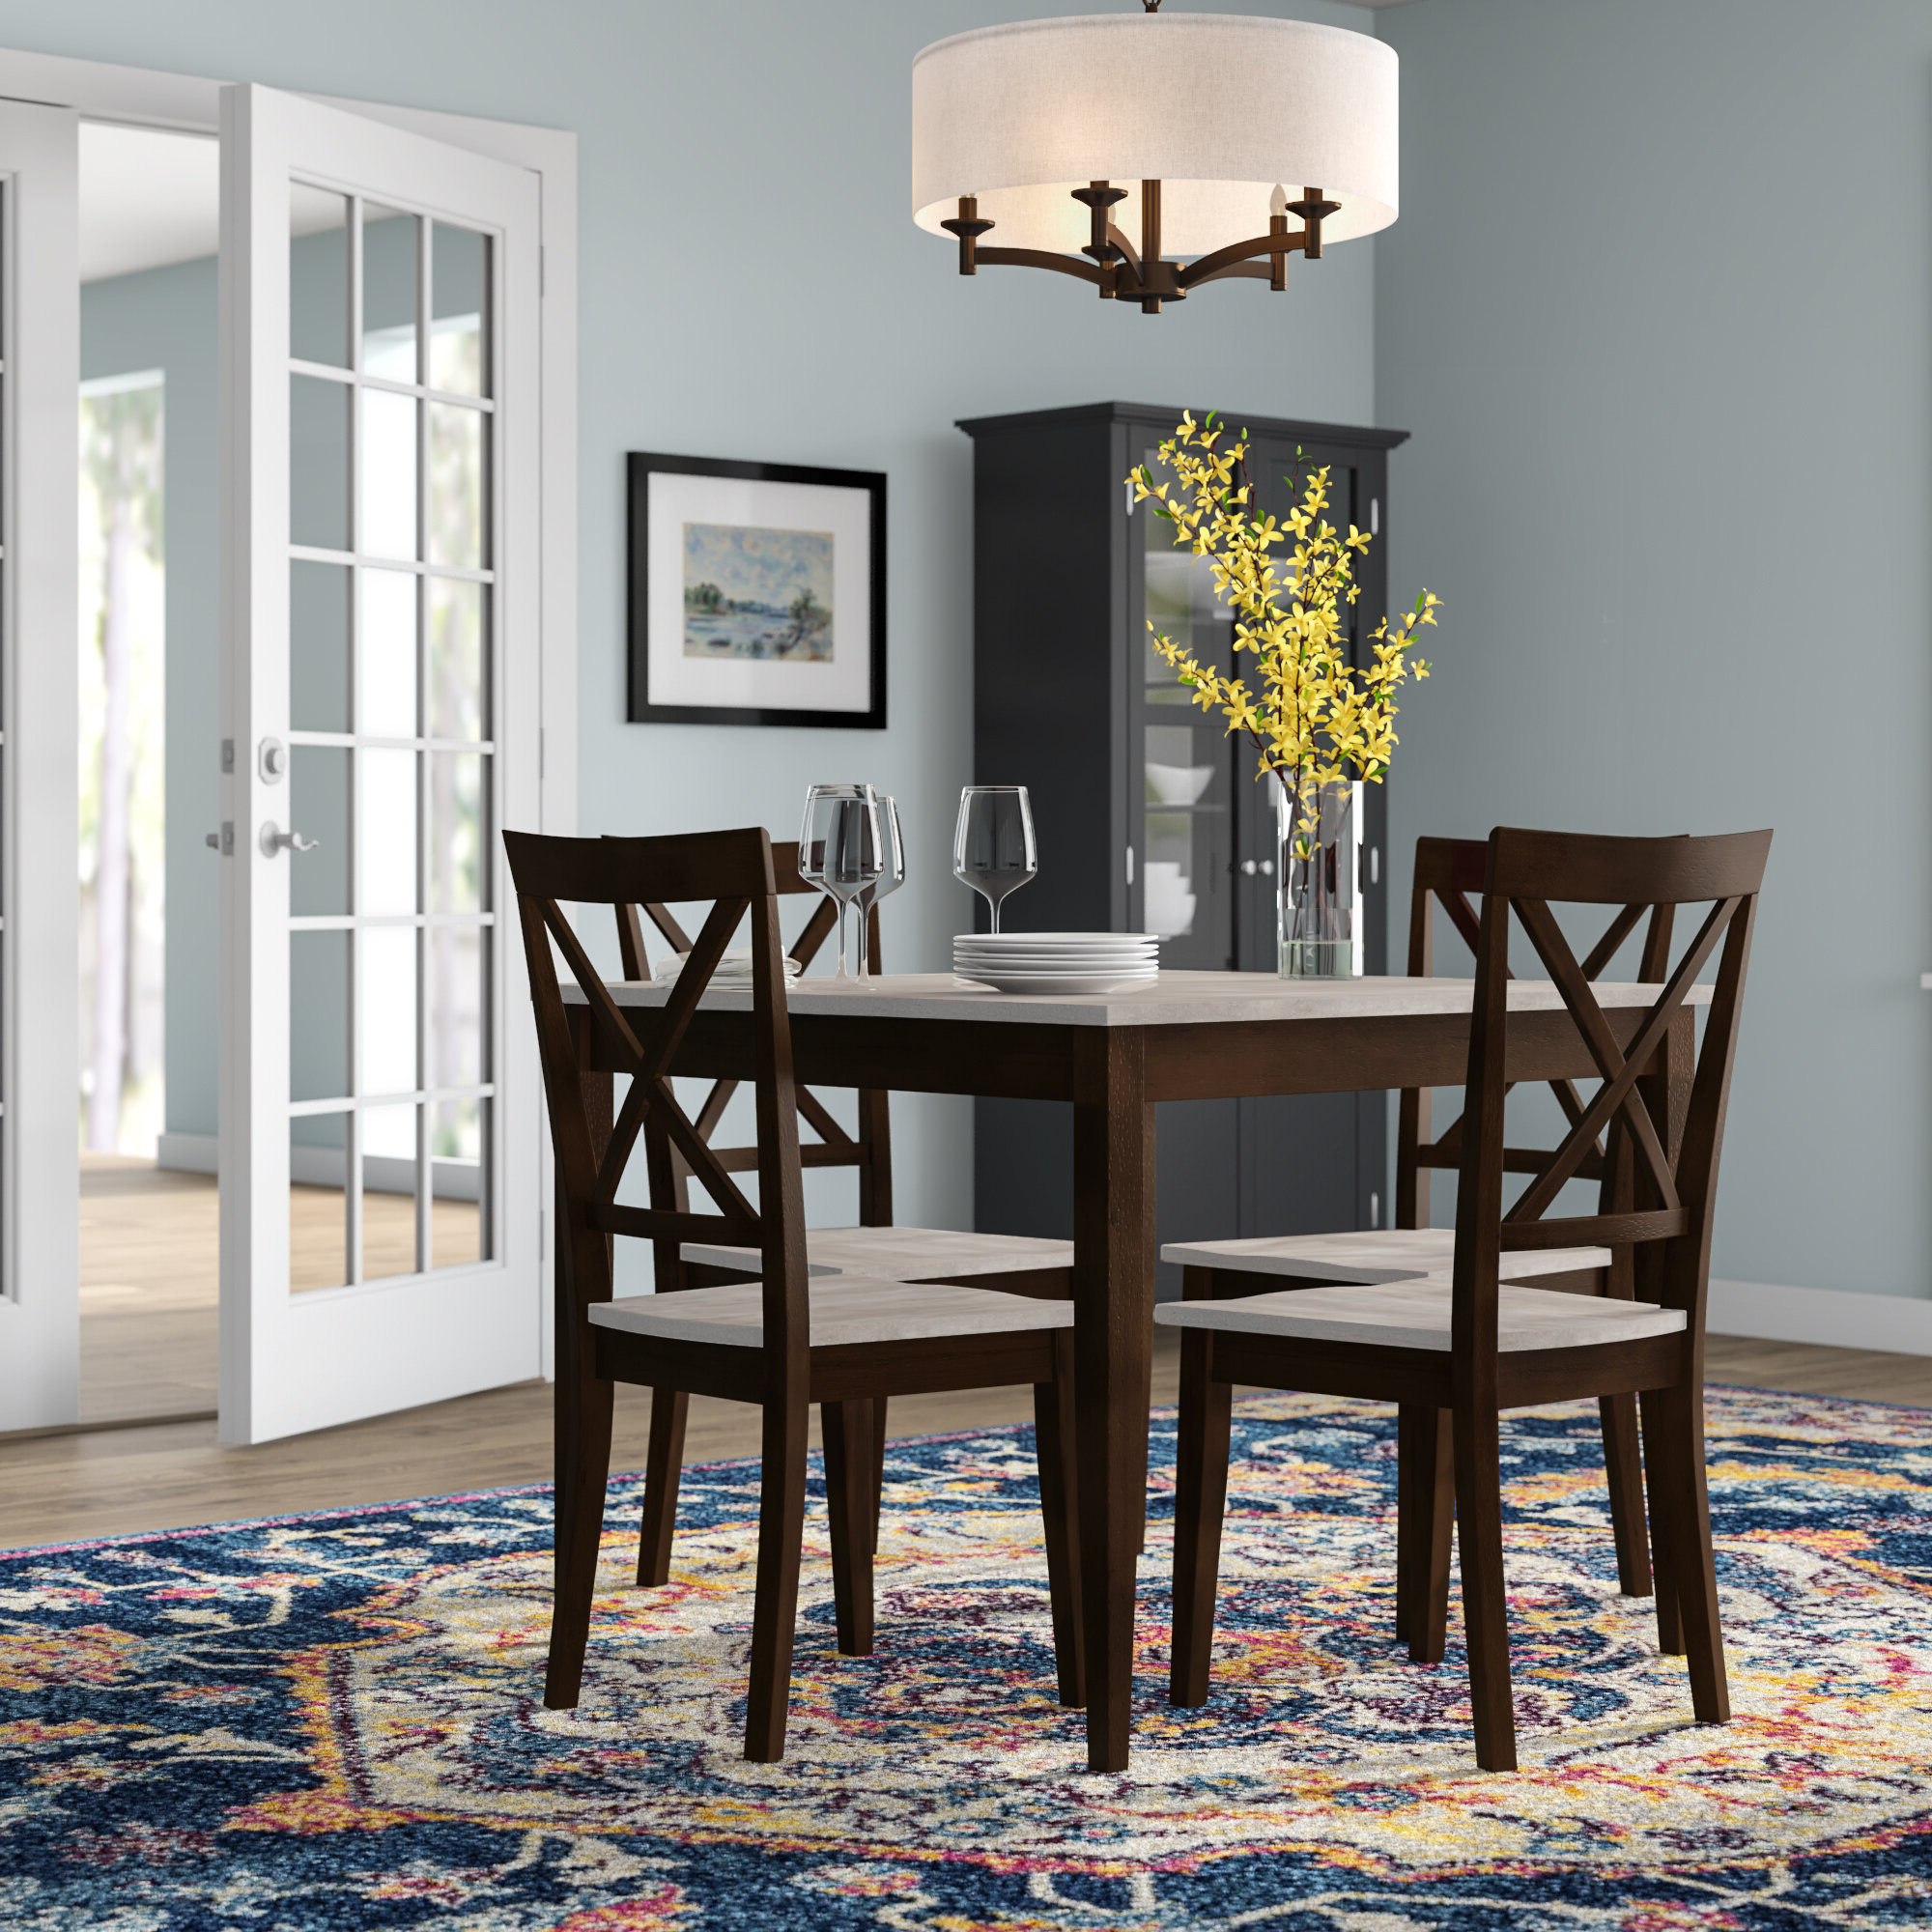 Wayfair For West Hill Family Table 3 Piece Dining Sets (View 18 of 25)